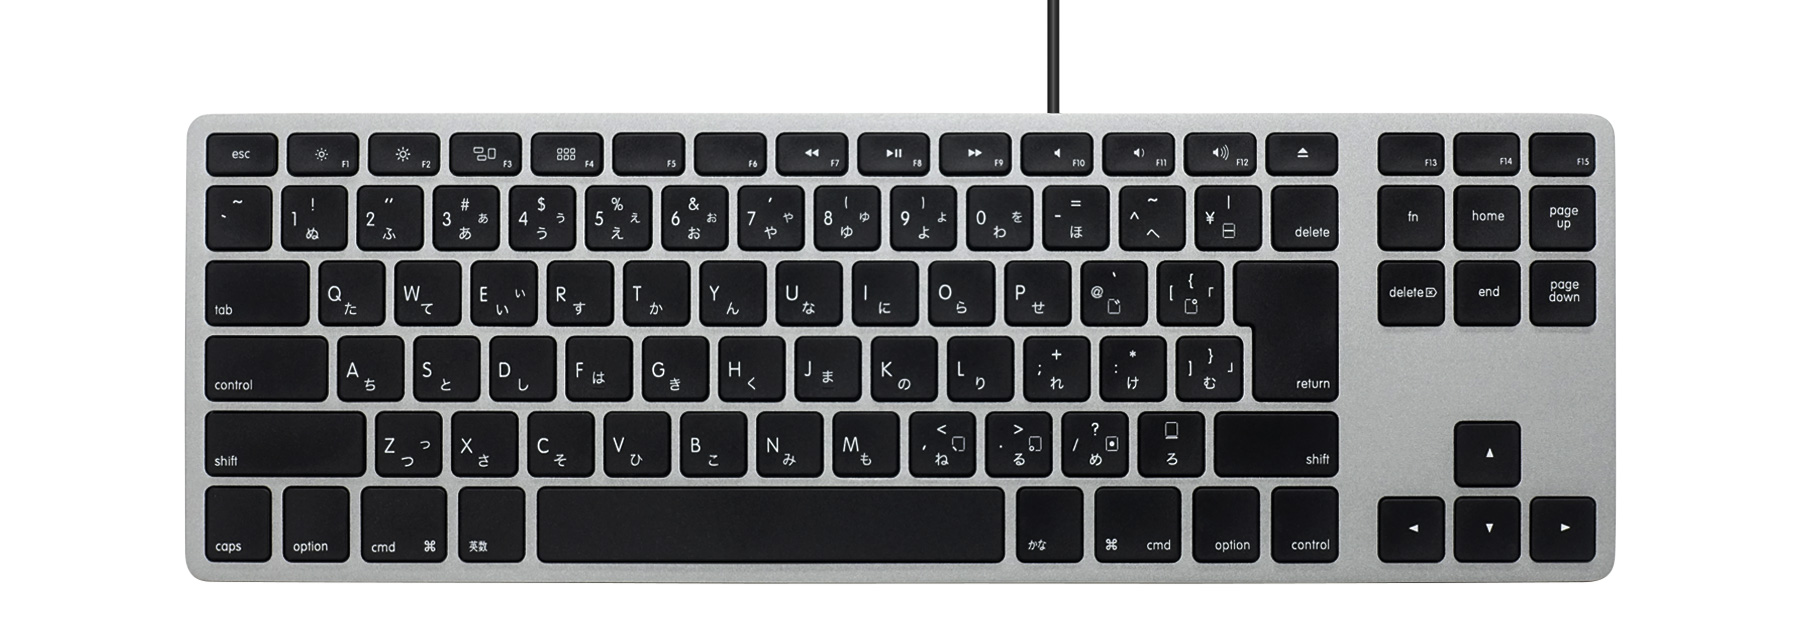 Matias Wired Aluminum Tenkeyless keyboard for Mac - Space Gray 日本語配列